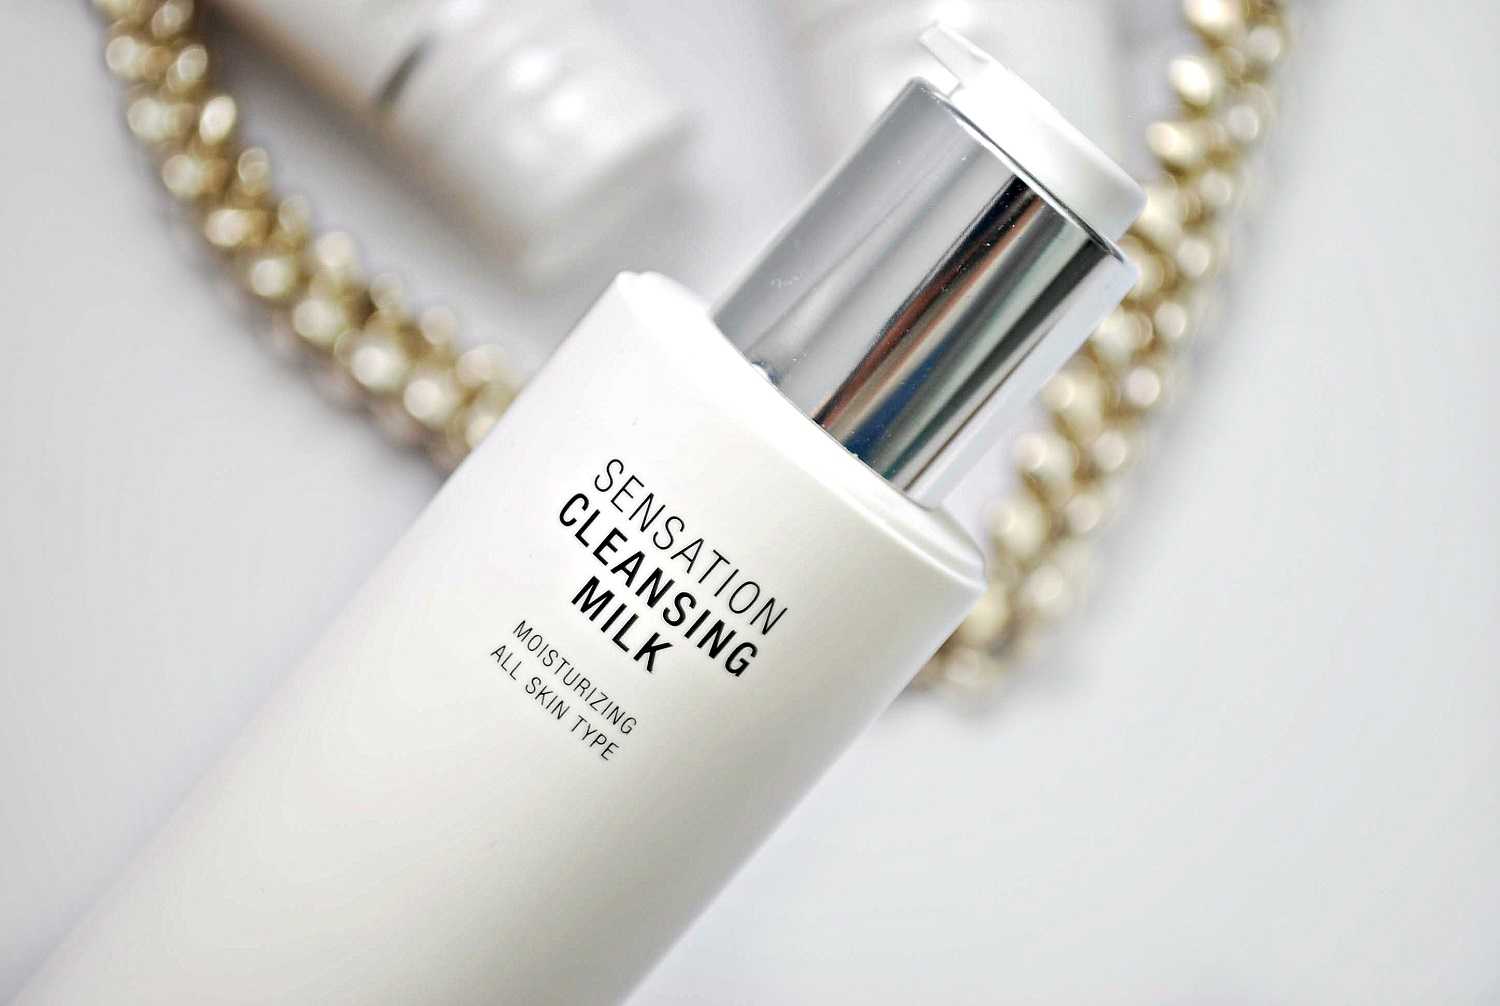 cleansing milk ritzo review